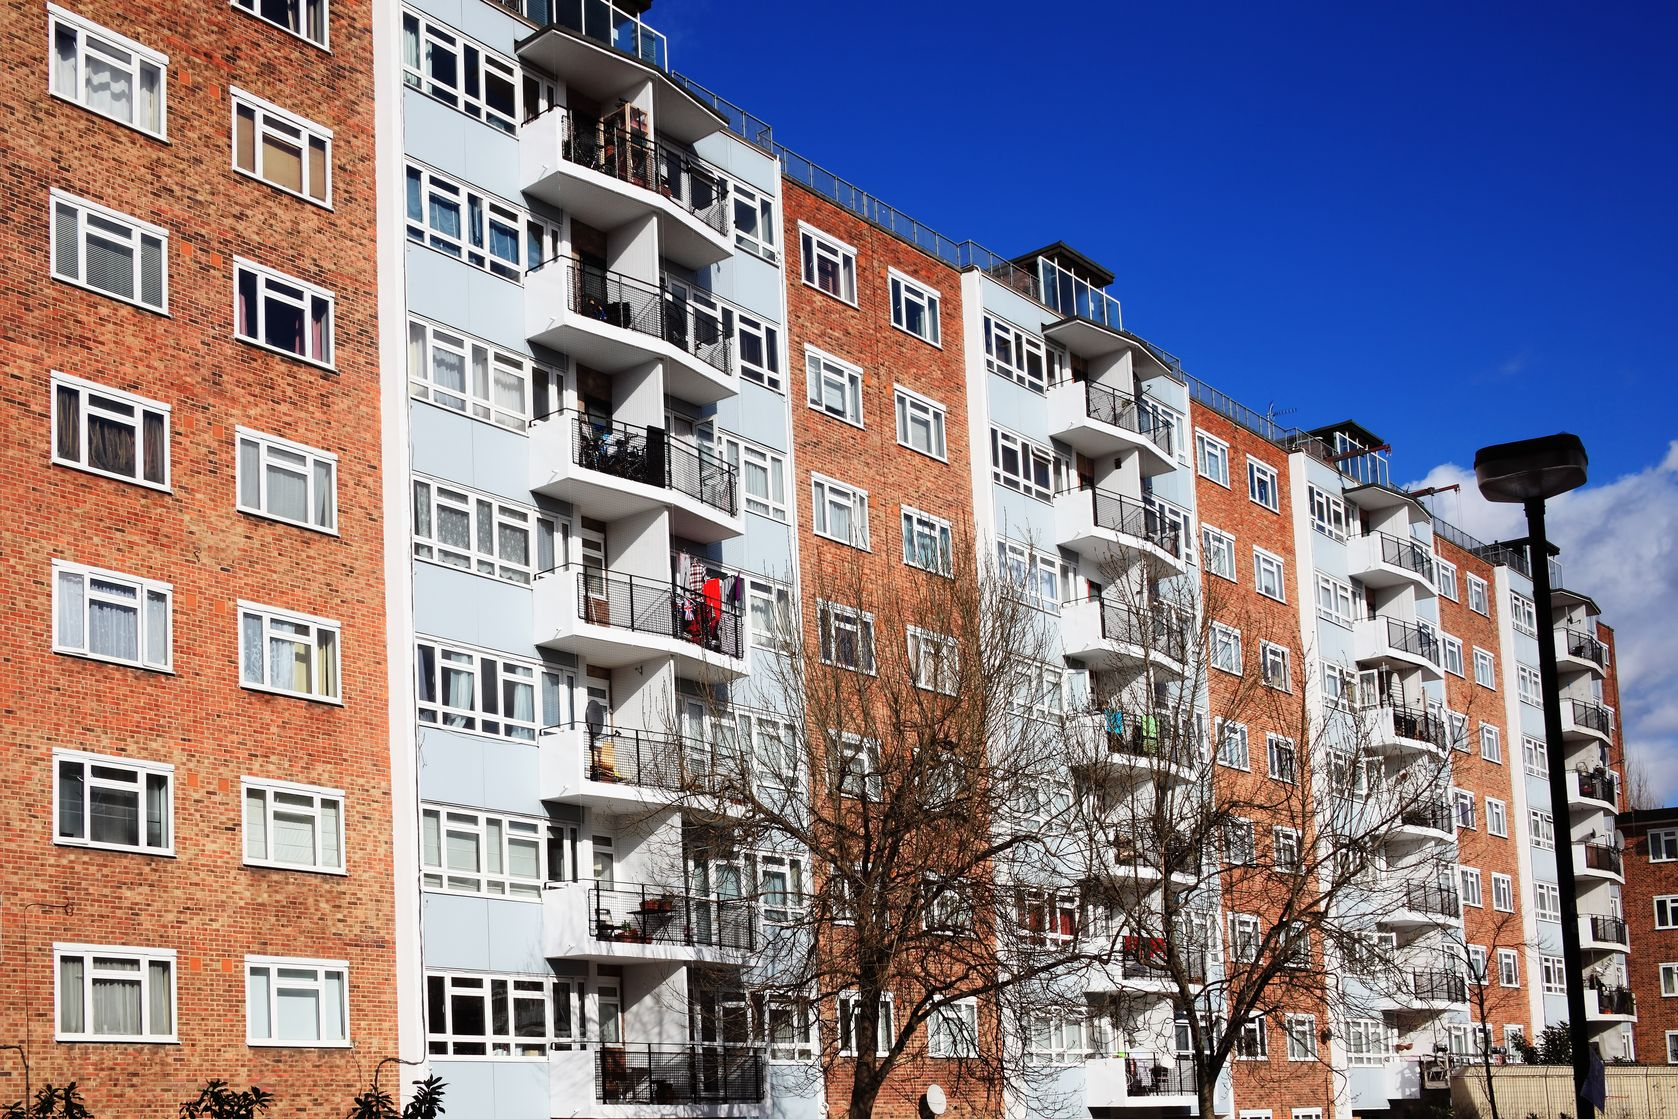 12768442 - public council housing apartments in london, england, uk